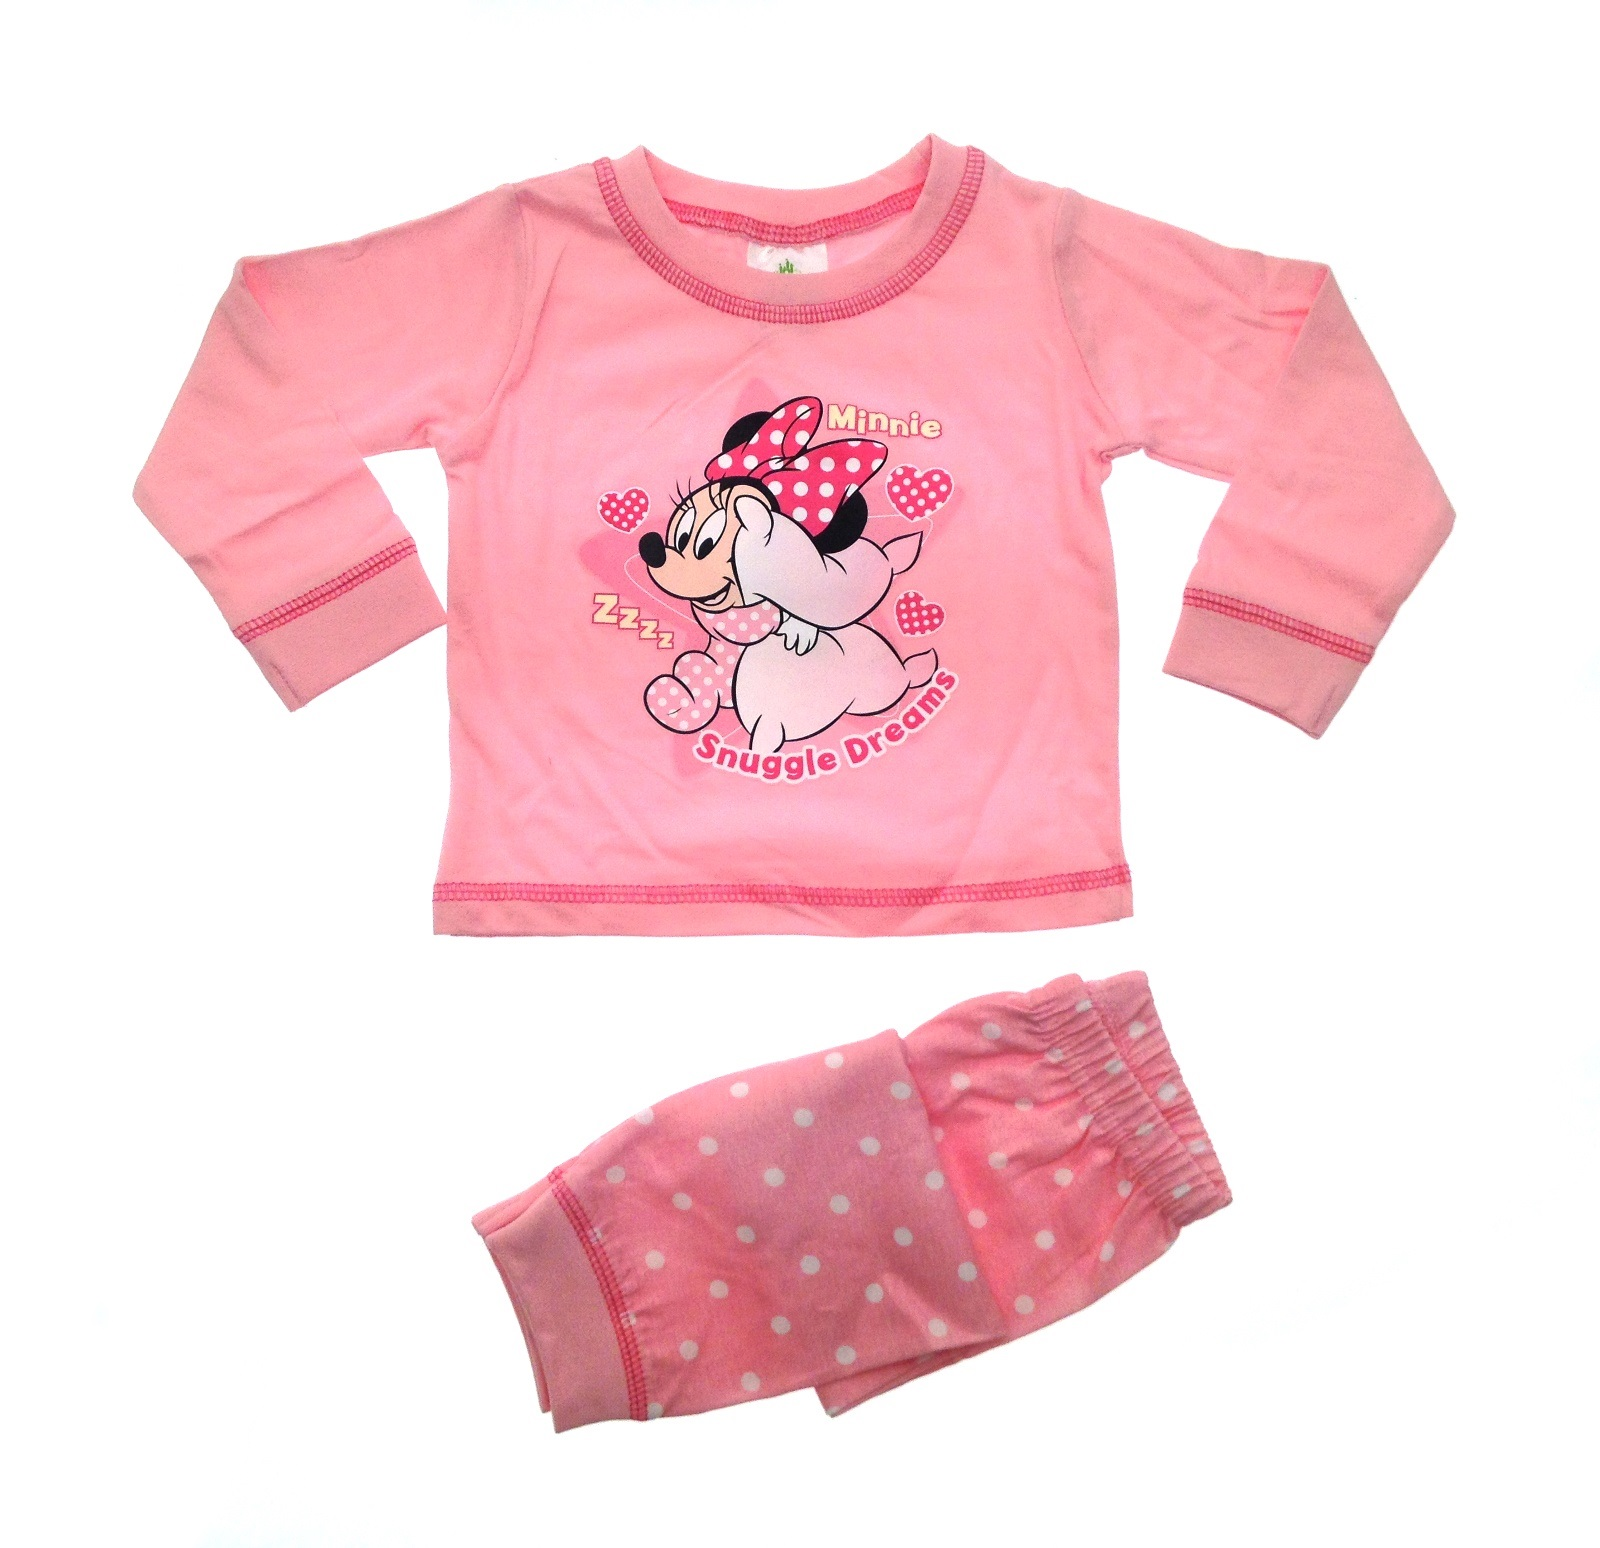 ca463142d0c4 Baby Girls Pyjamas Kids Toddlers Disney Minnie Mouse Pjs Set Me To ...